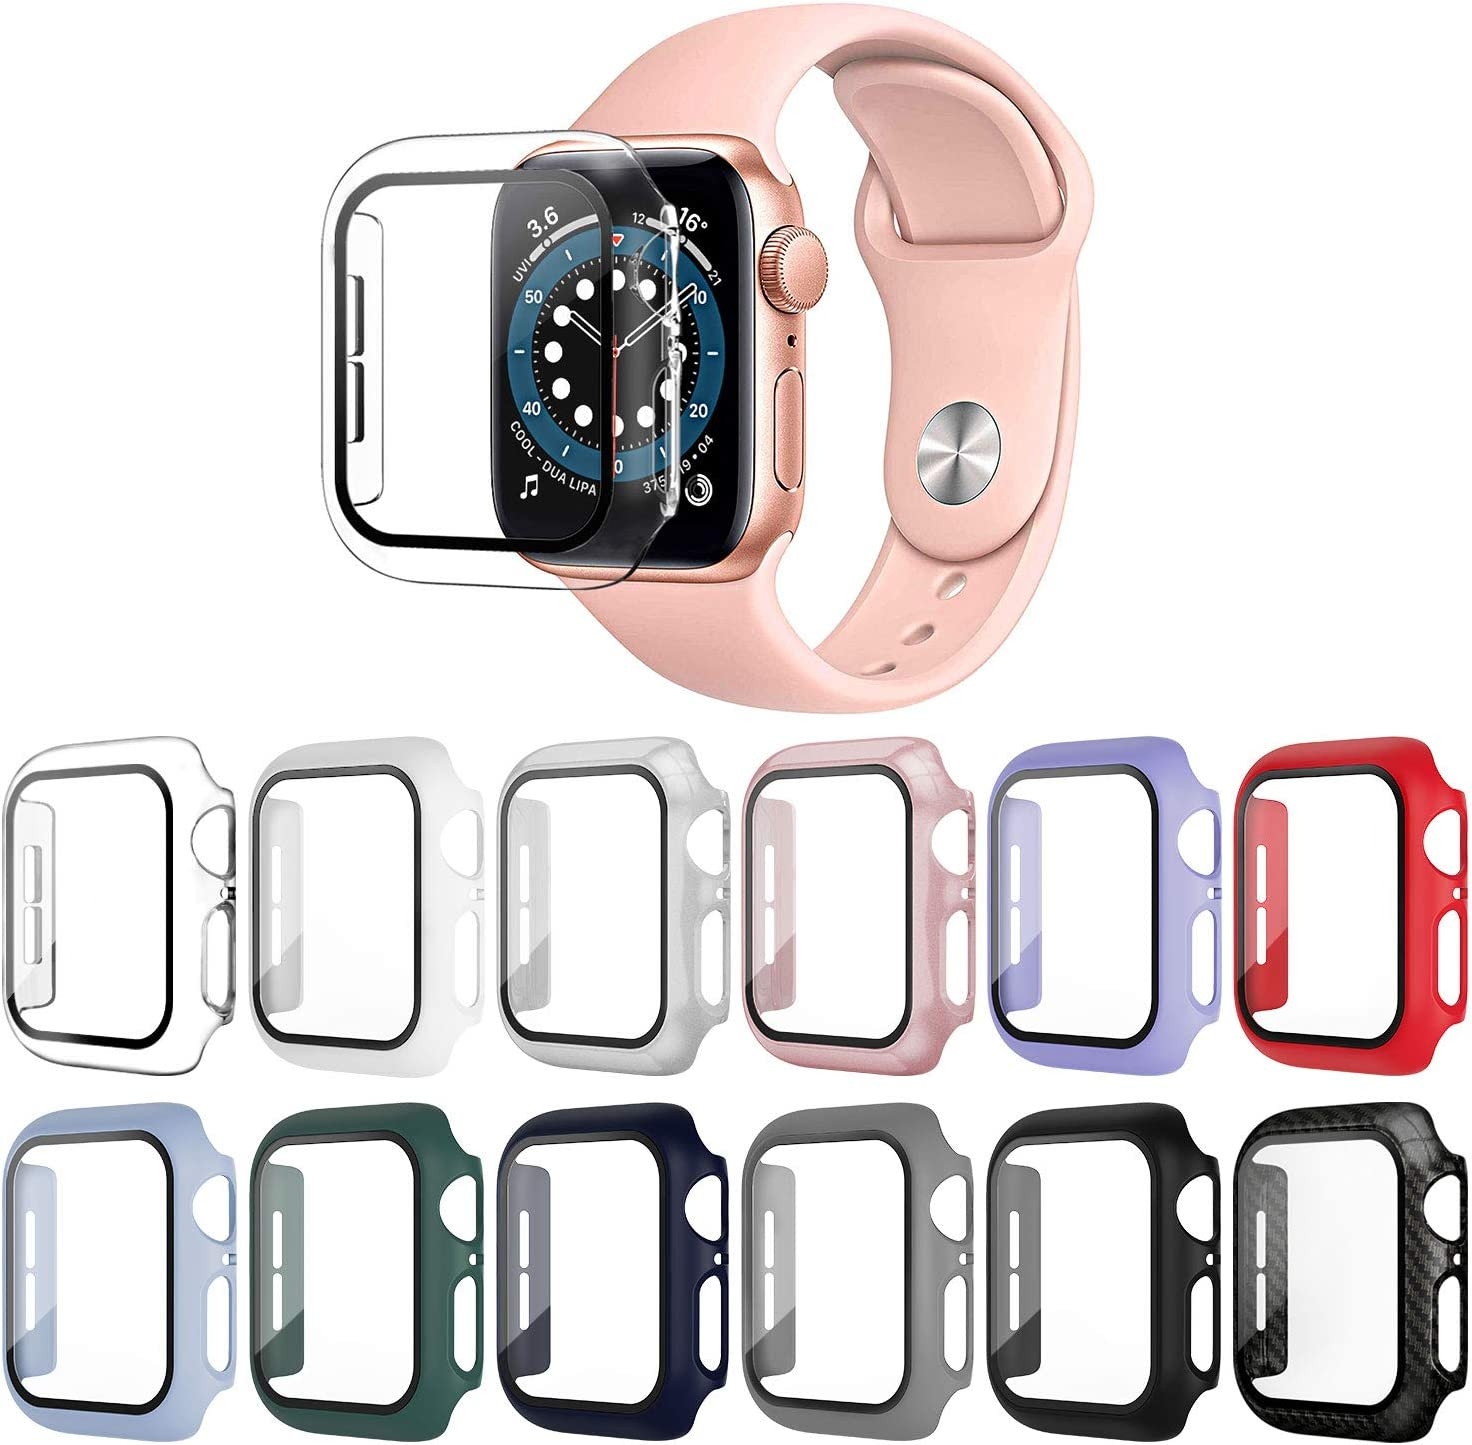 OMEE 12 Pack Apple Watch Case 40mm Series 6/5/4/SE with Tempered Glass Screen Protector, Ultra-Thin Hard PC Shockproof iWatch 40mm Accessories Bumper Full Protective Cover for Men/Women